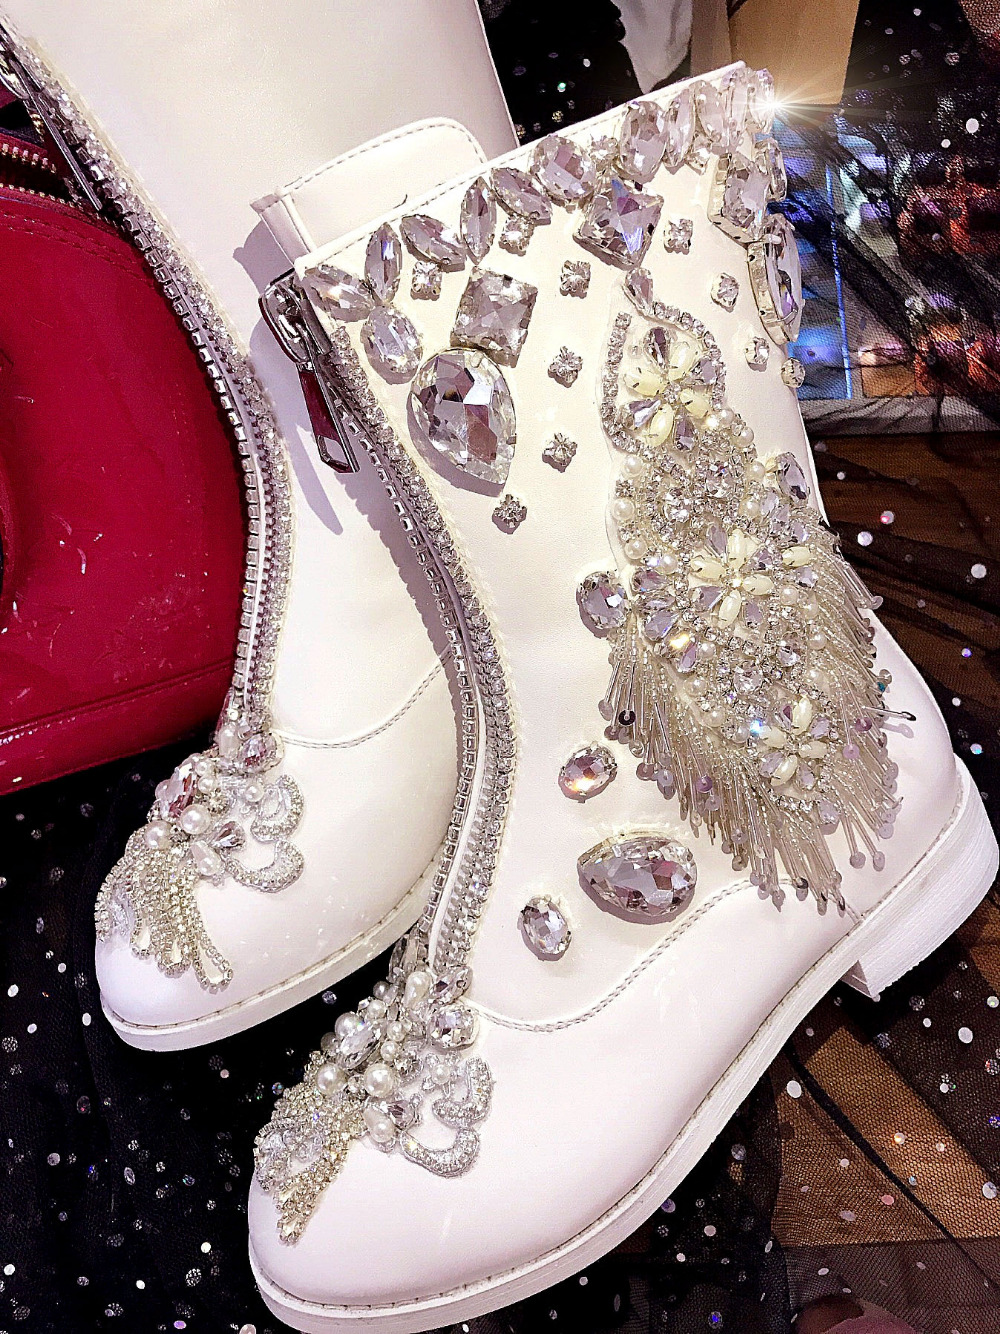 Ladies Gem Rivers Fringed Chains Zippers Ankle Boots Sequin White Flat Leather Rubber High Top Shoes Boots Women Bottines Bottin цена 2017